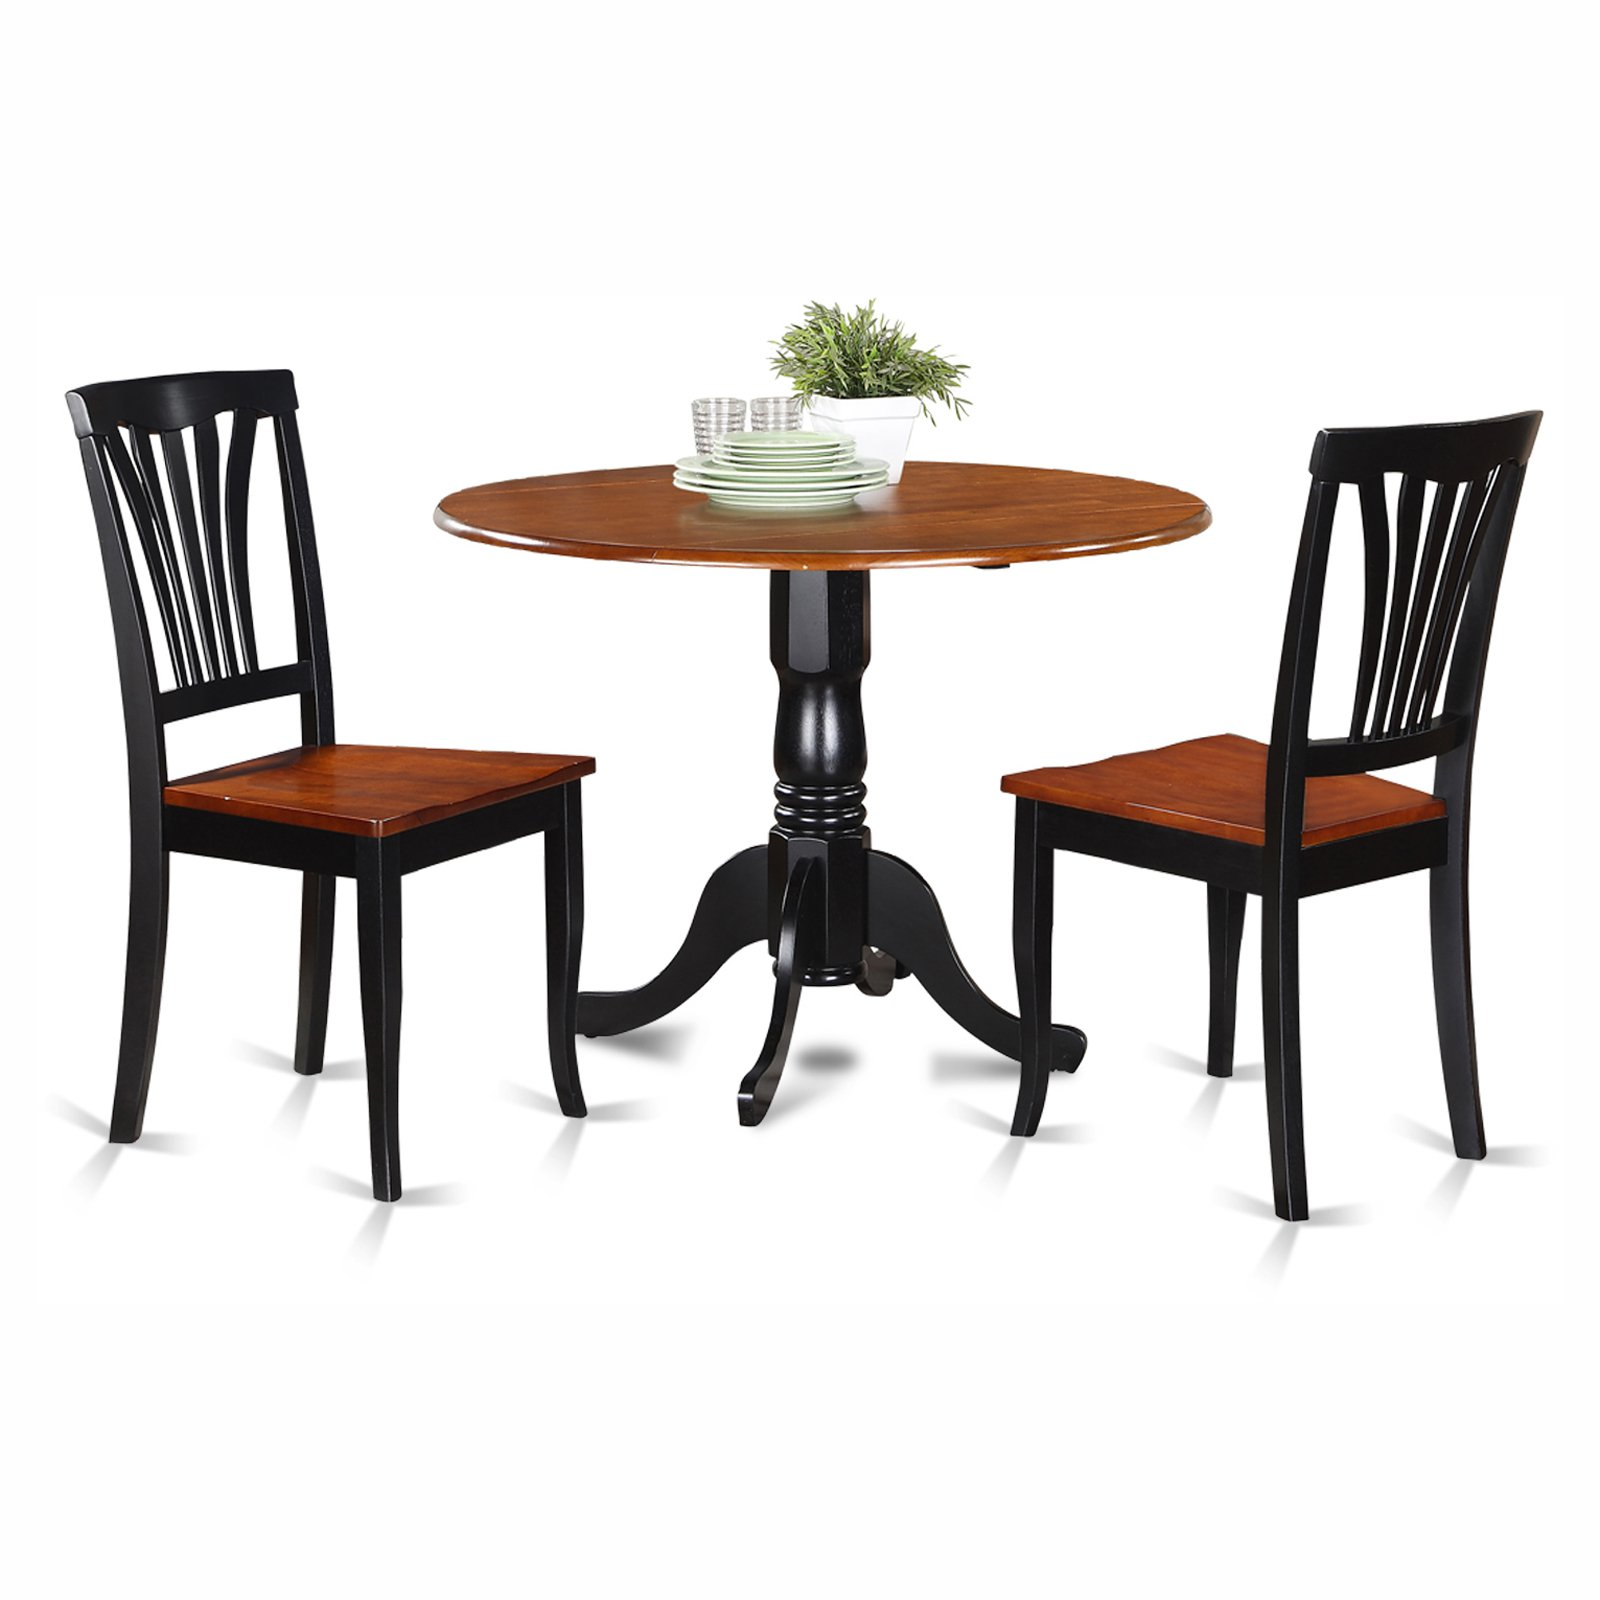 East West Furniture Dublin 3 Piece Round Dining Table Set with Avon Wooden Seat Chairs